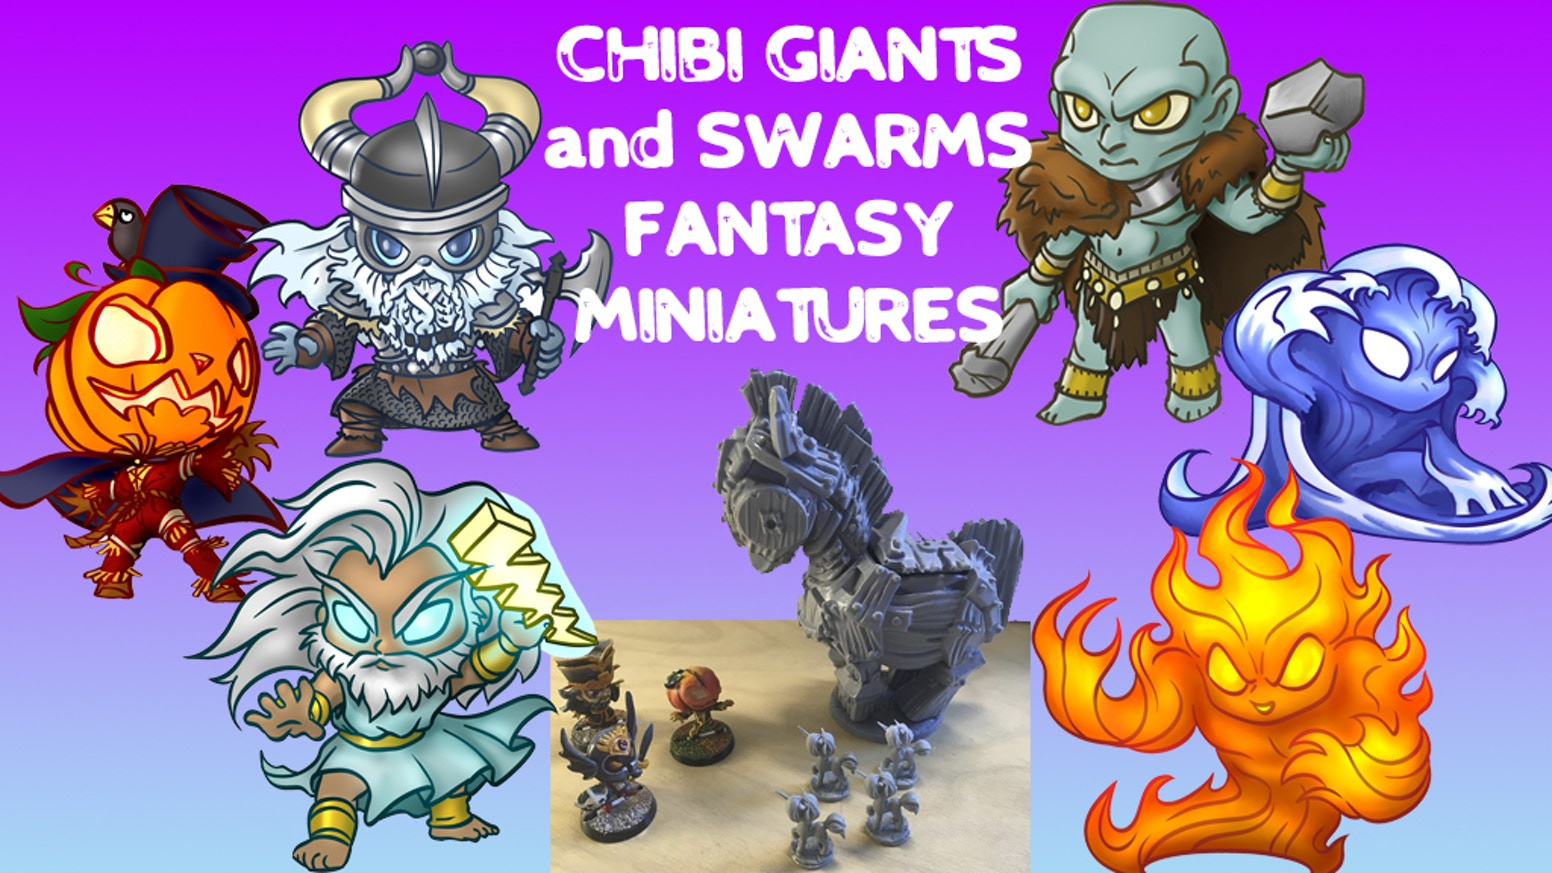 Developing a range of 50mm large chibi monsters along with small swarm chibi to pummel or overrun unwary adventurers